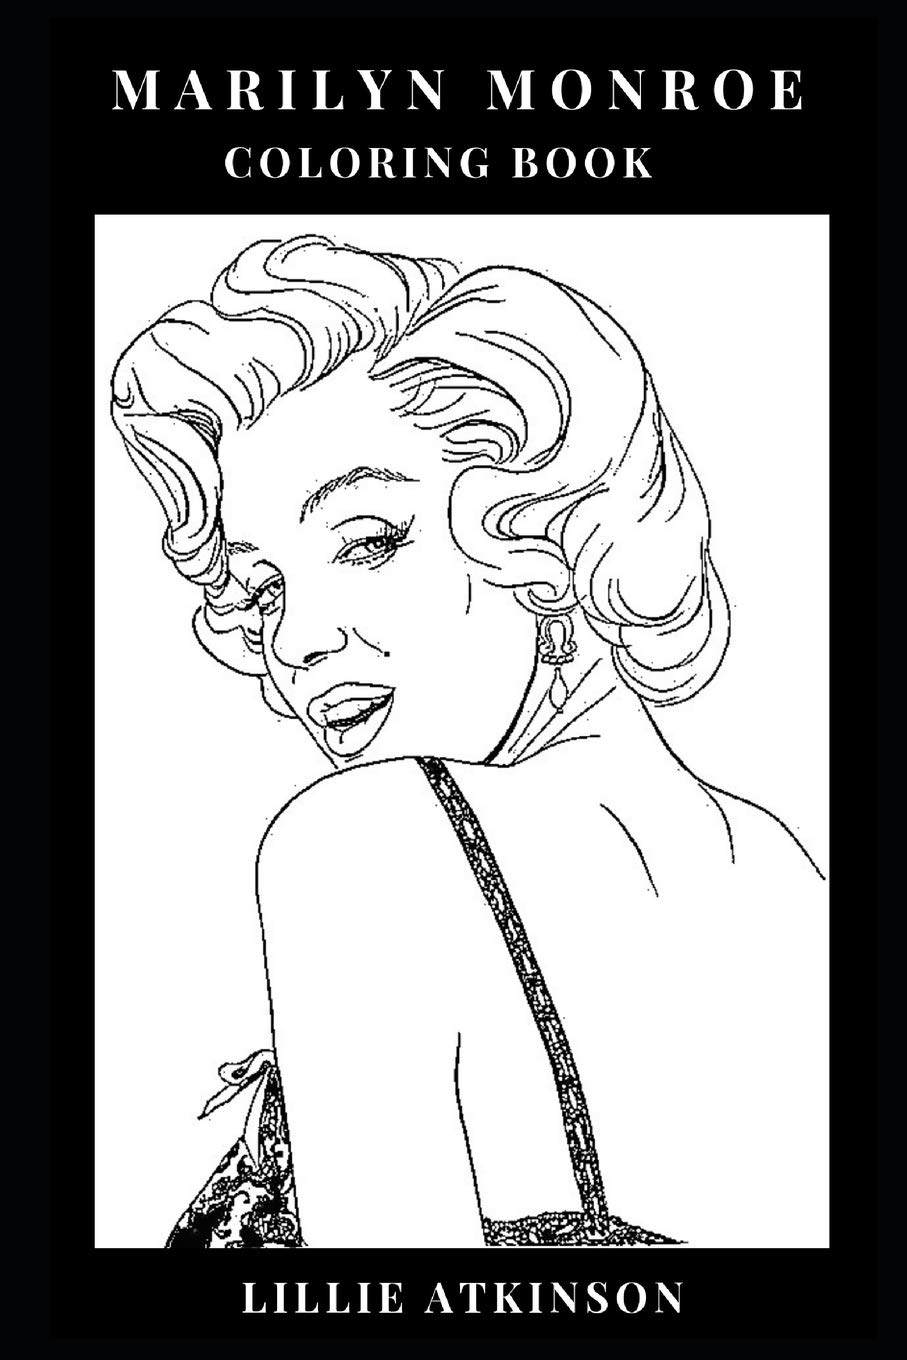 Marilyn monroe coloring book icon of beauty and pin up girl sex symbol of the kennedy era and pop culture icon inspired adult coloring book marilyn